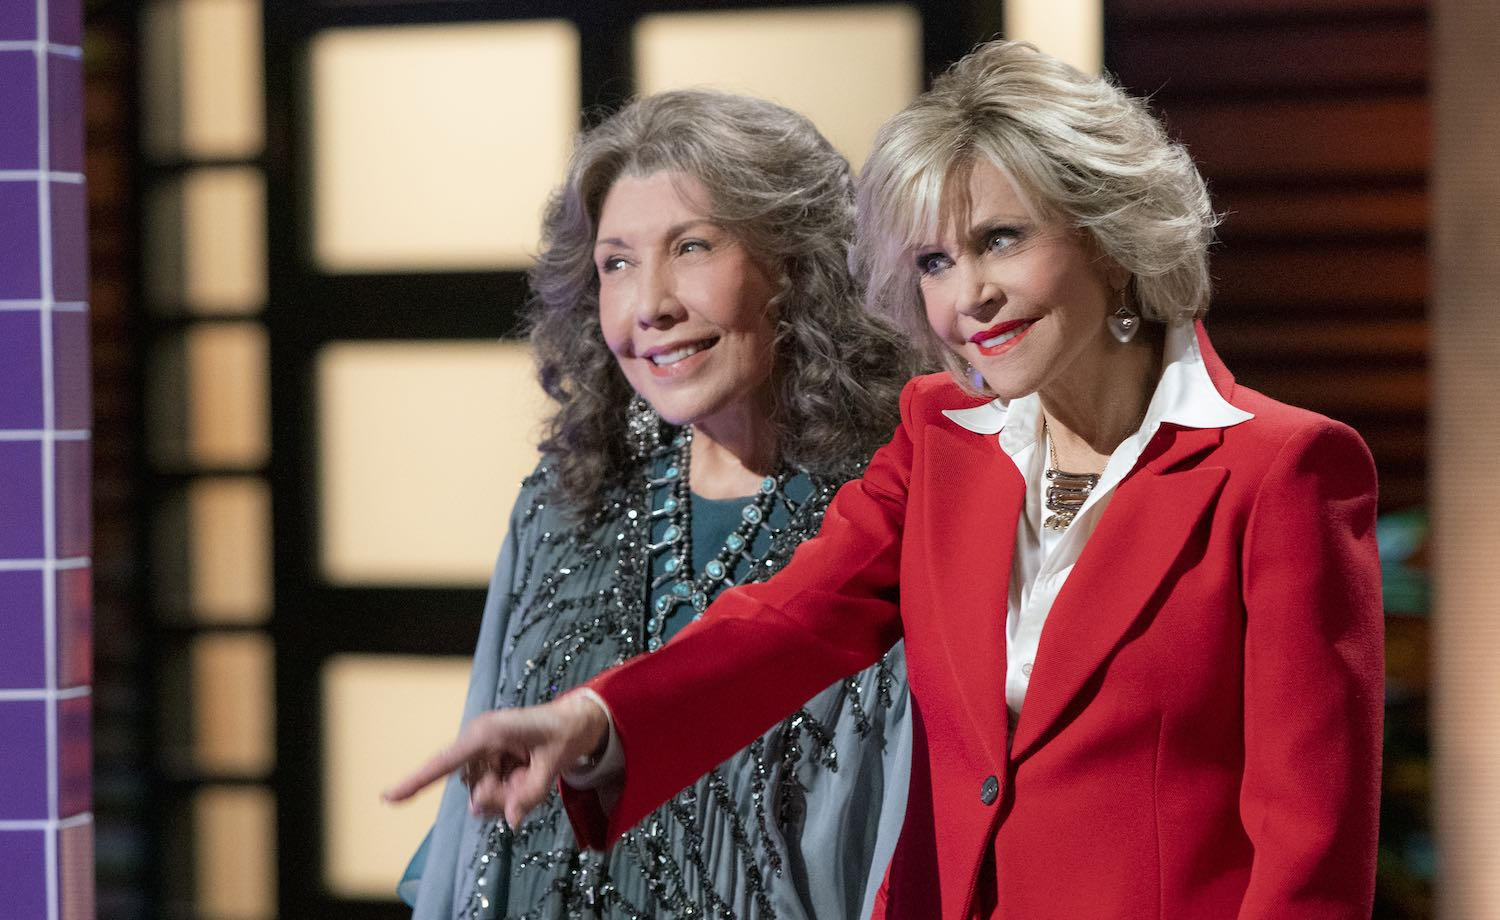 Actores de 'Grace and Frankie' revelarán episodio inédito por una buena causa